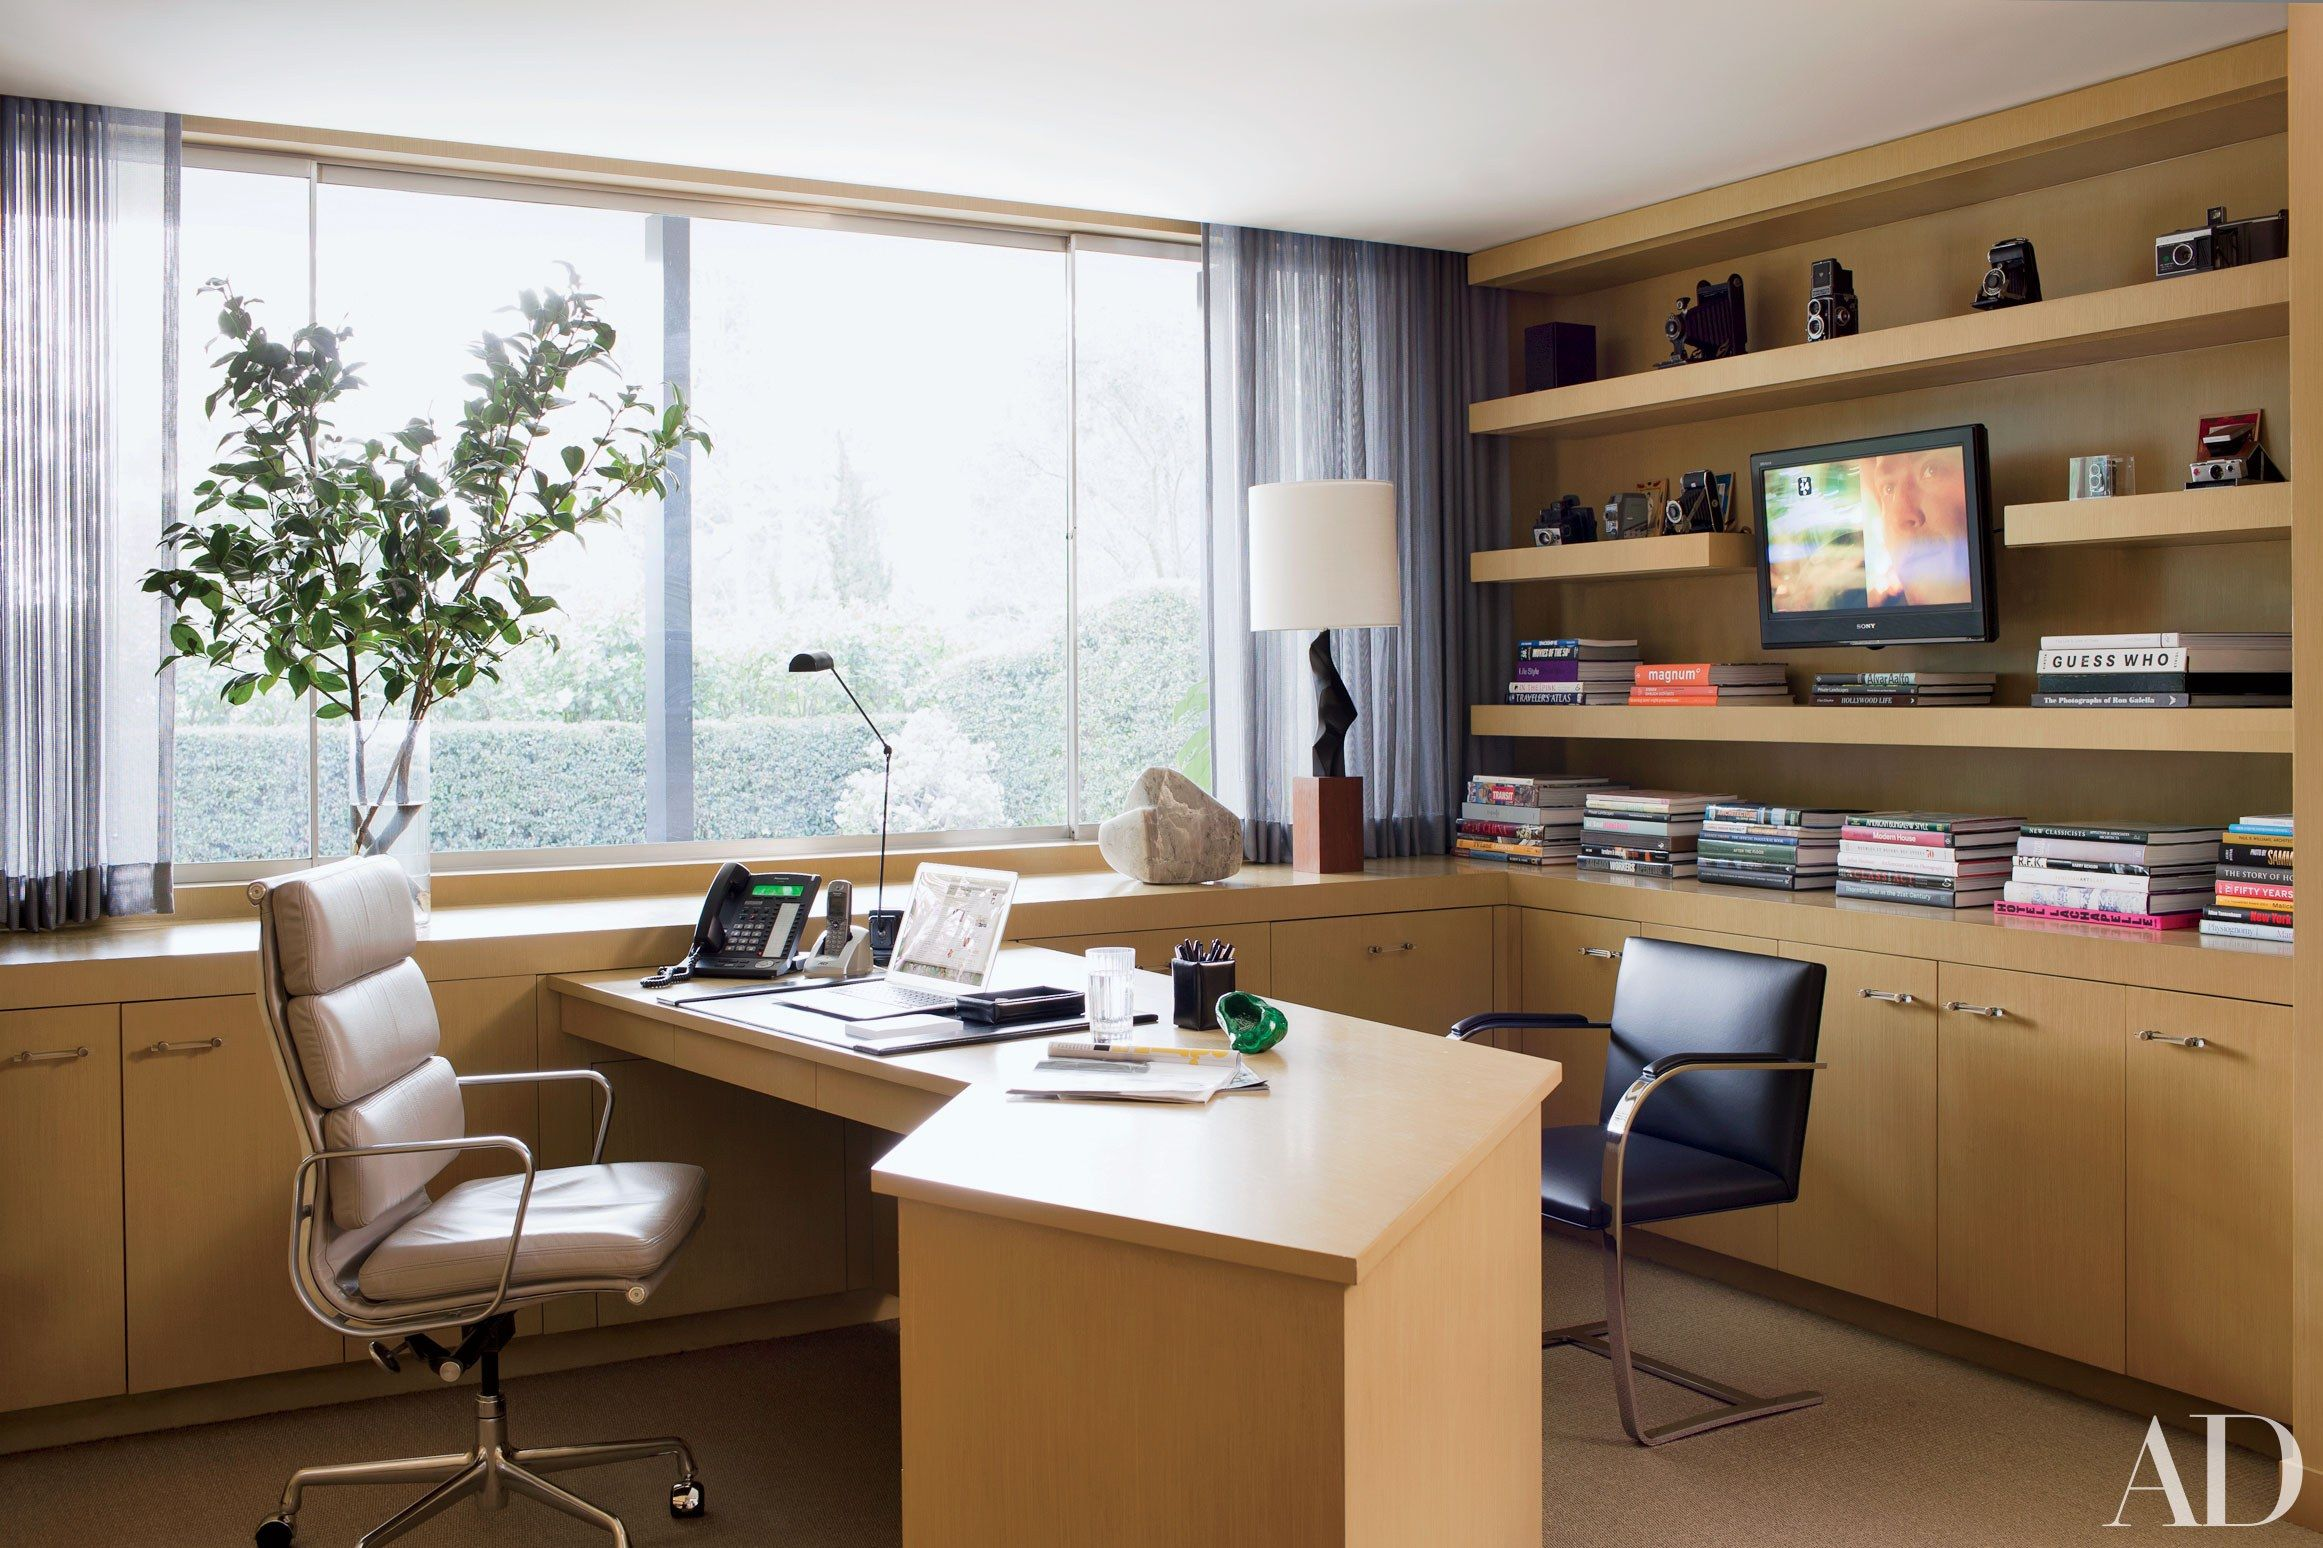 50 home office design ideas that will inspire productivity - Corporate Office Design Ideas